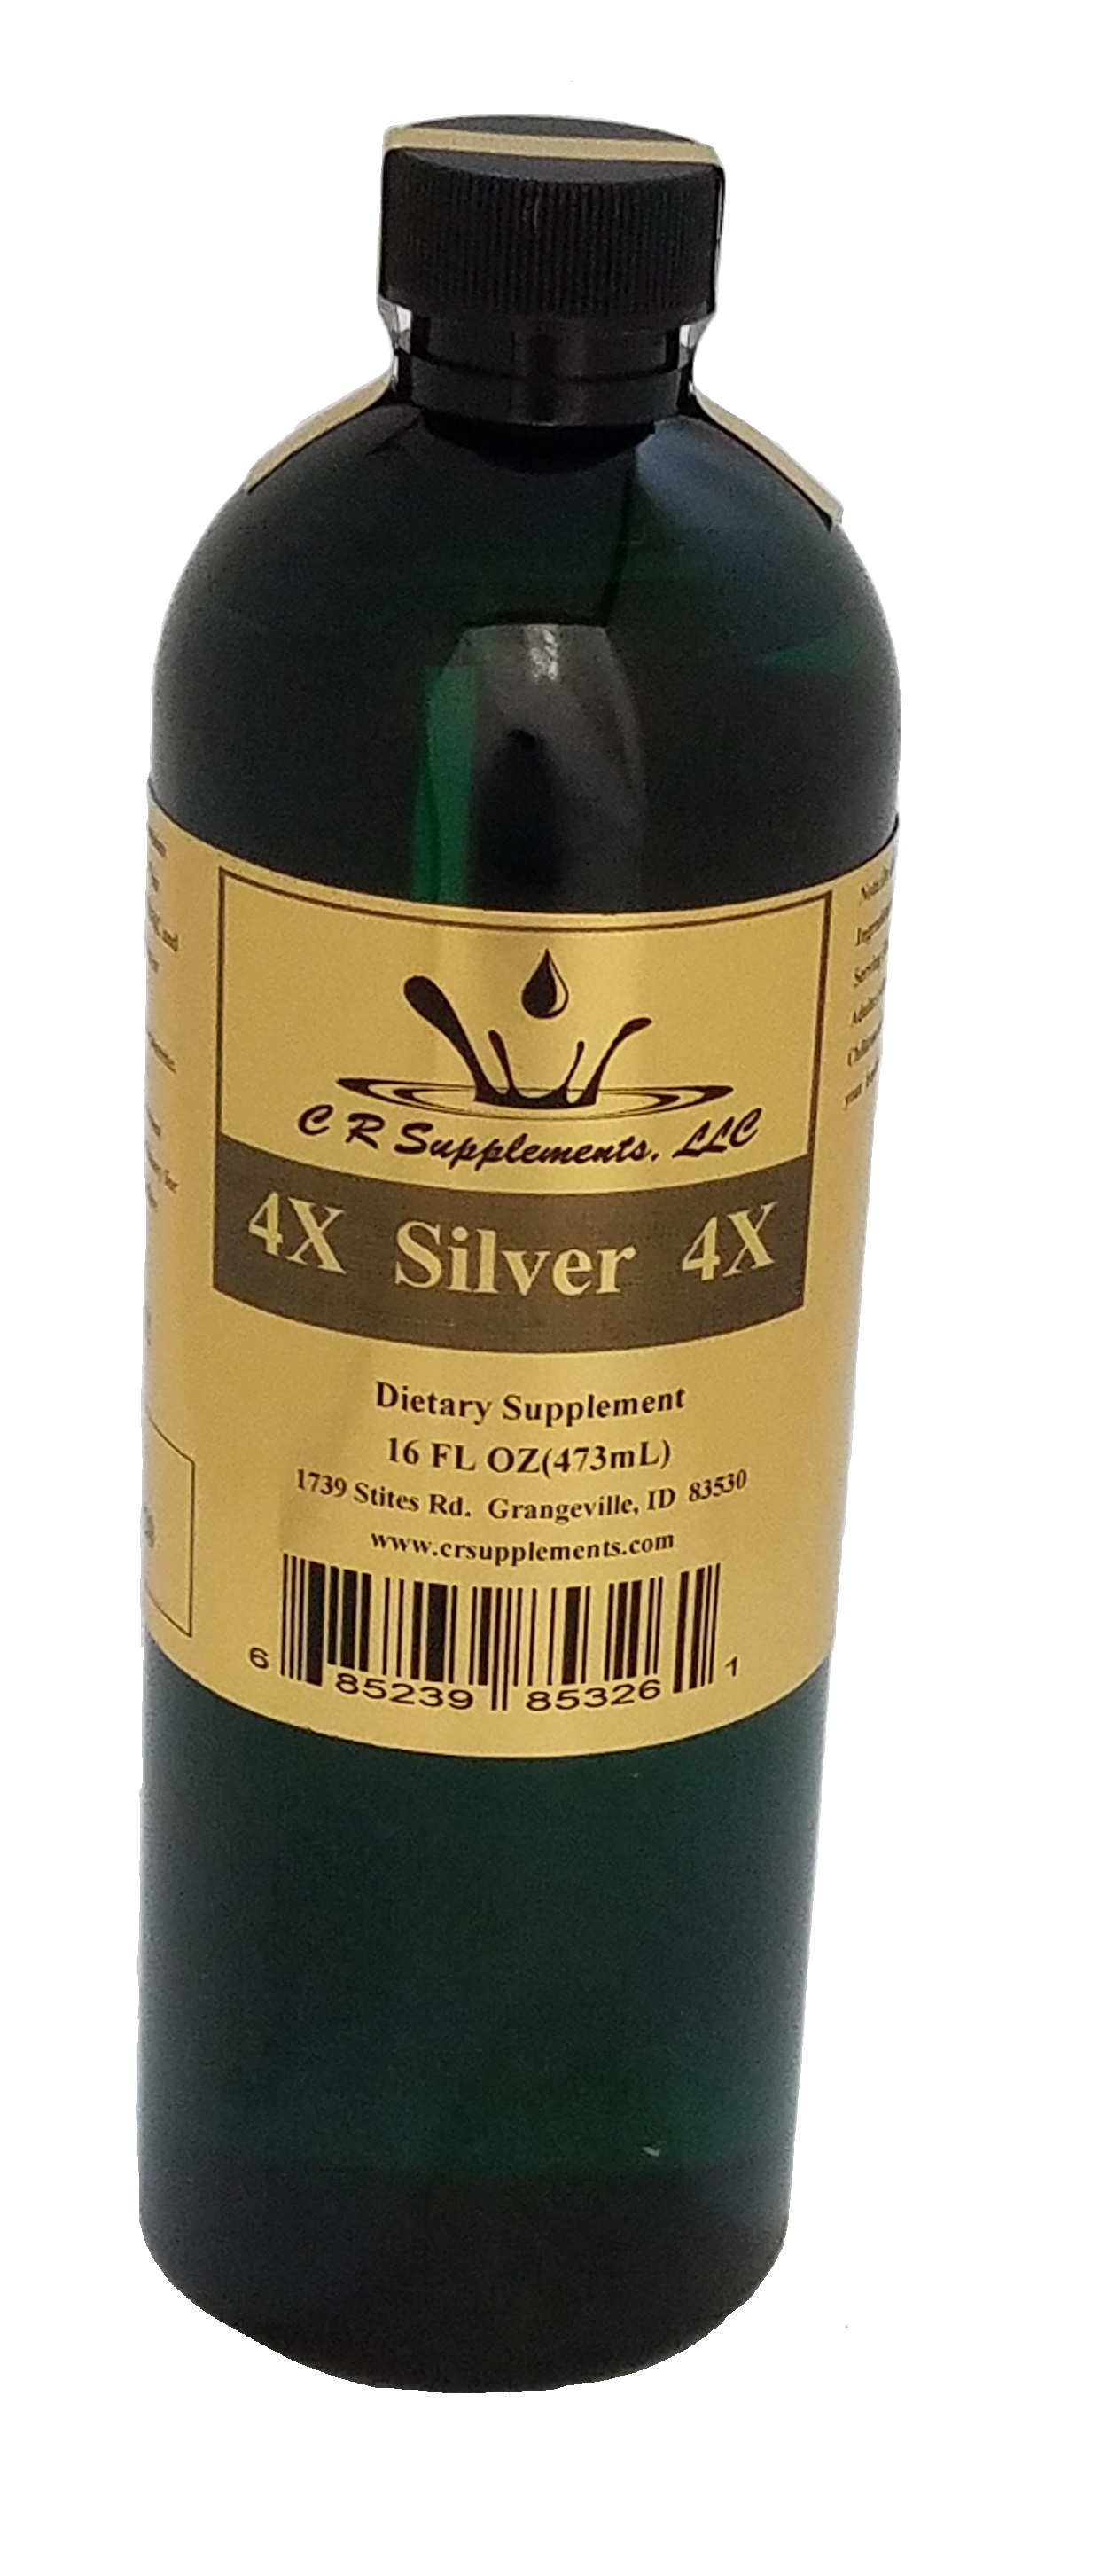 Silver 4x Dietary Supplement By C R Supplements, LLC